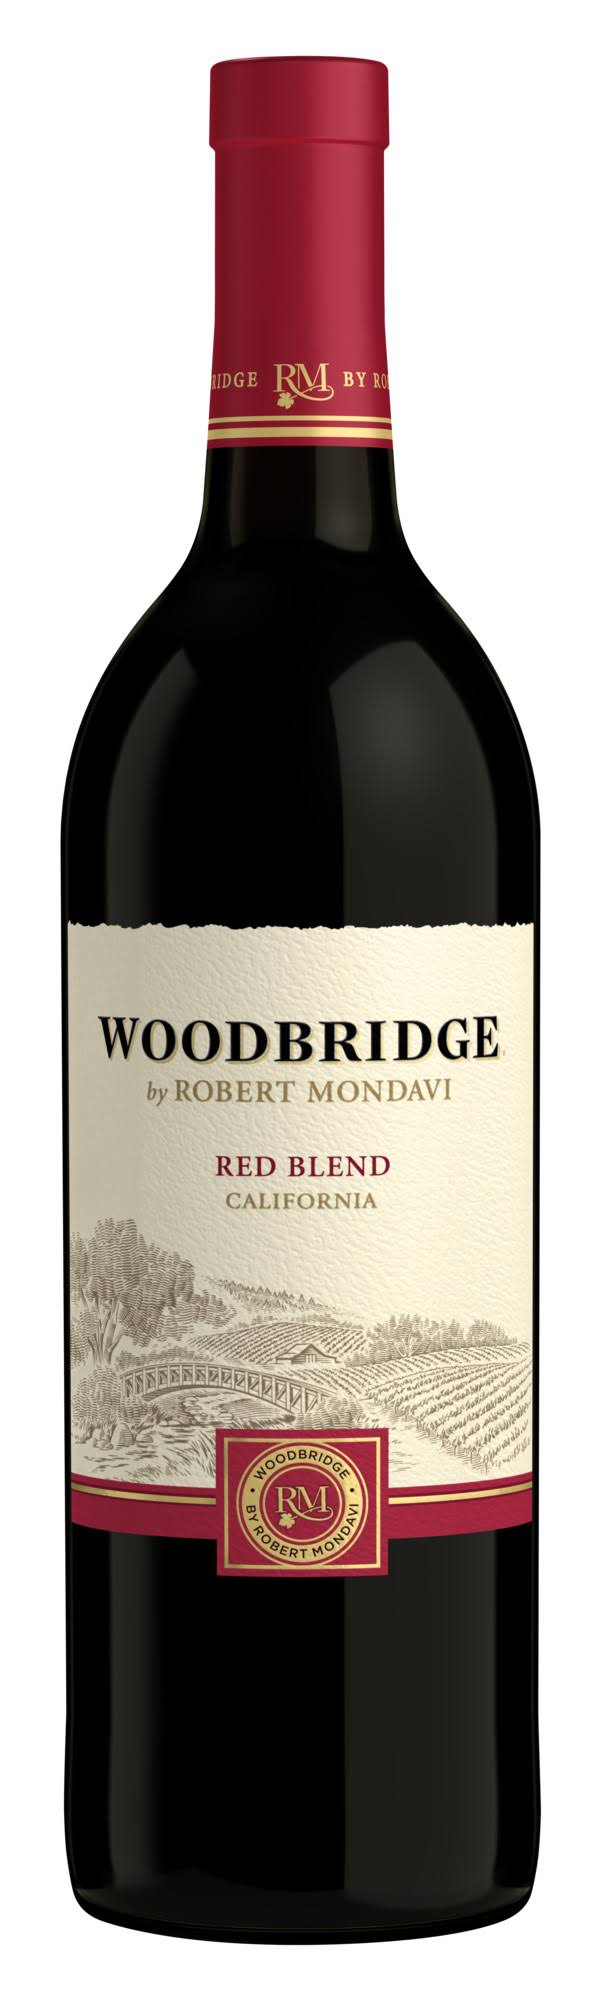 Woodbridge Red Blend, California, 2015 - 750 ml